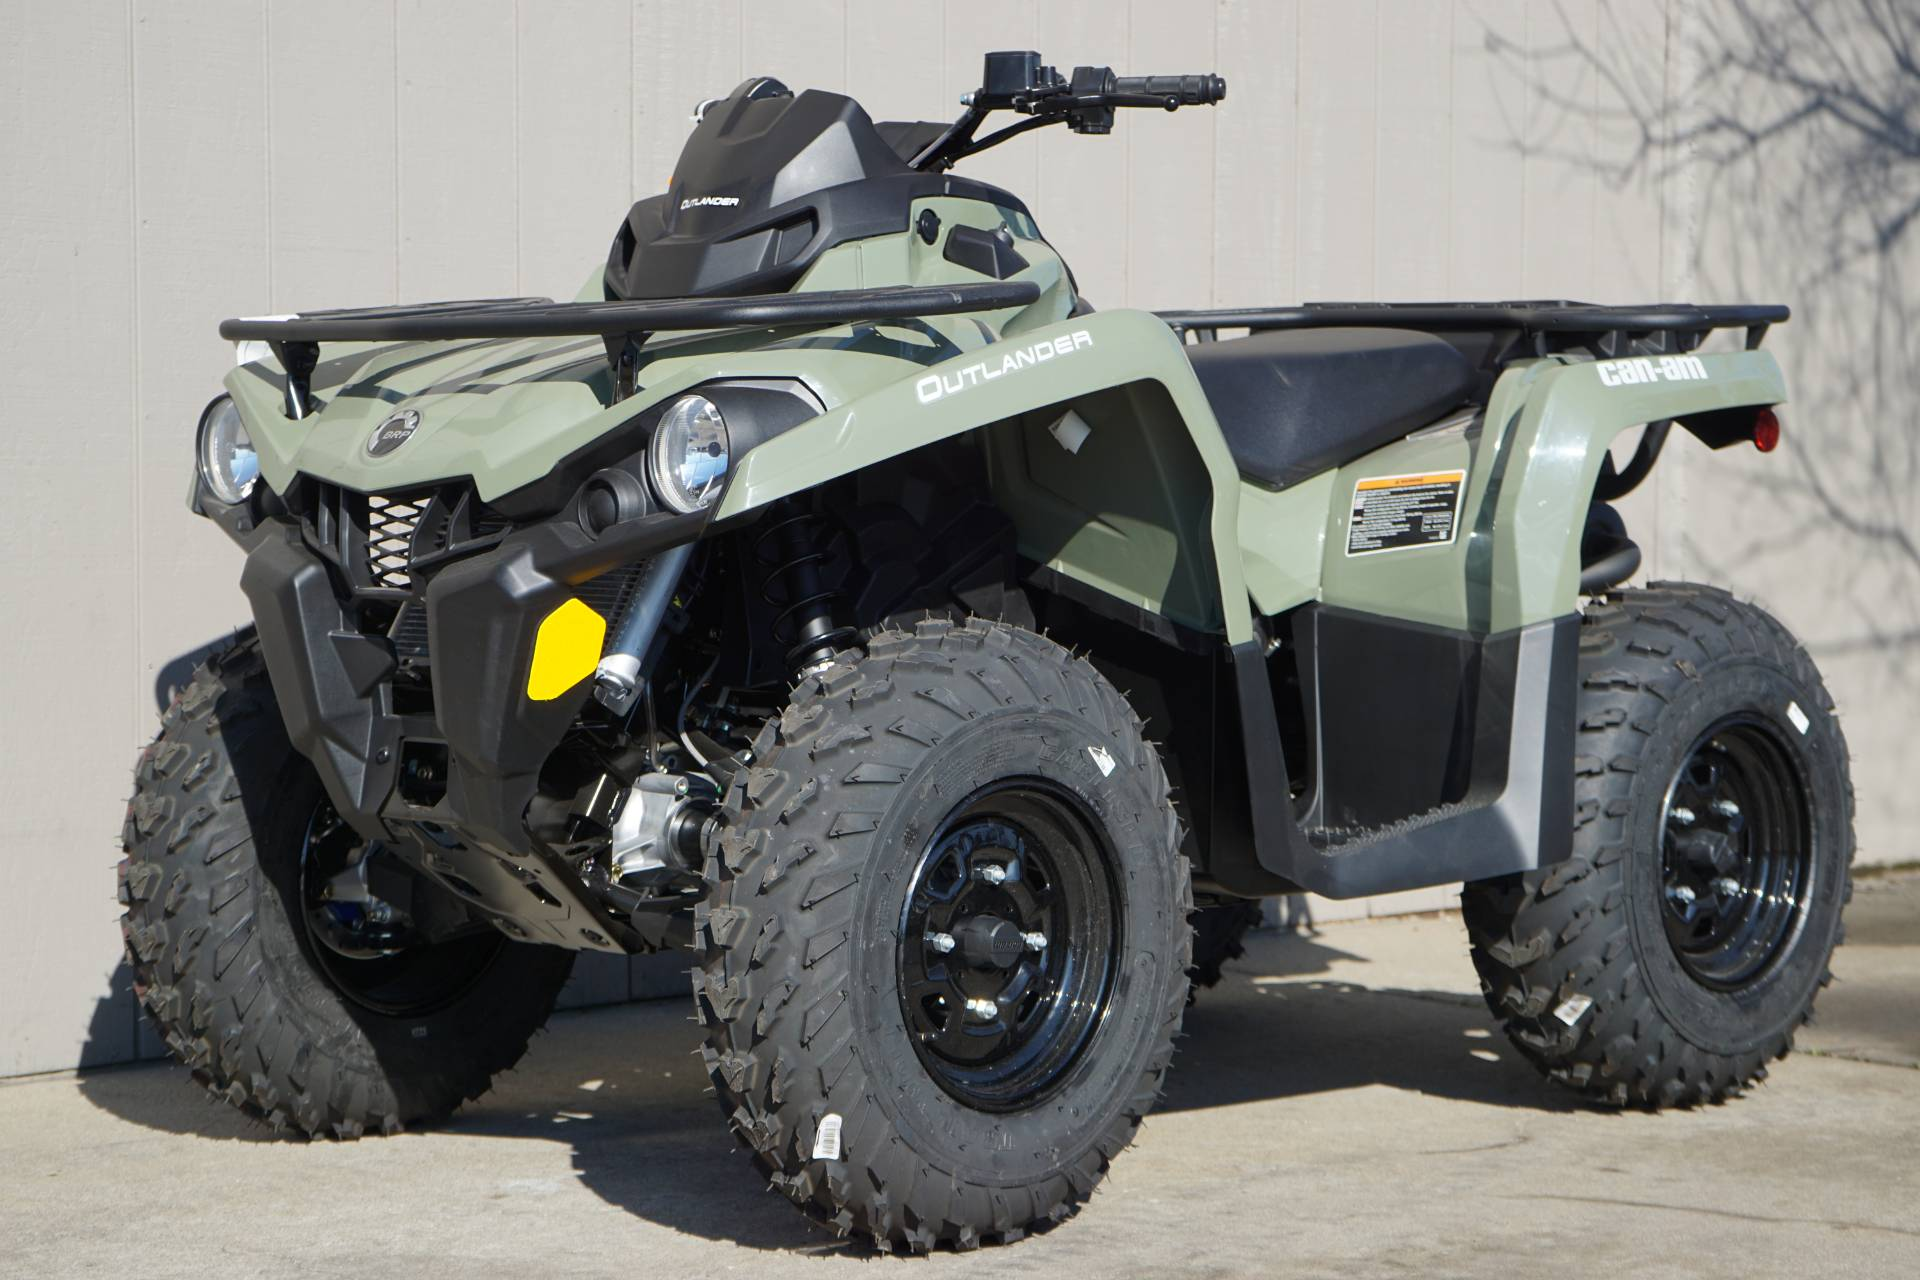 2019 Can-Am Outlander 450 for sale 39037